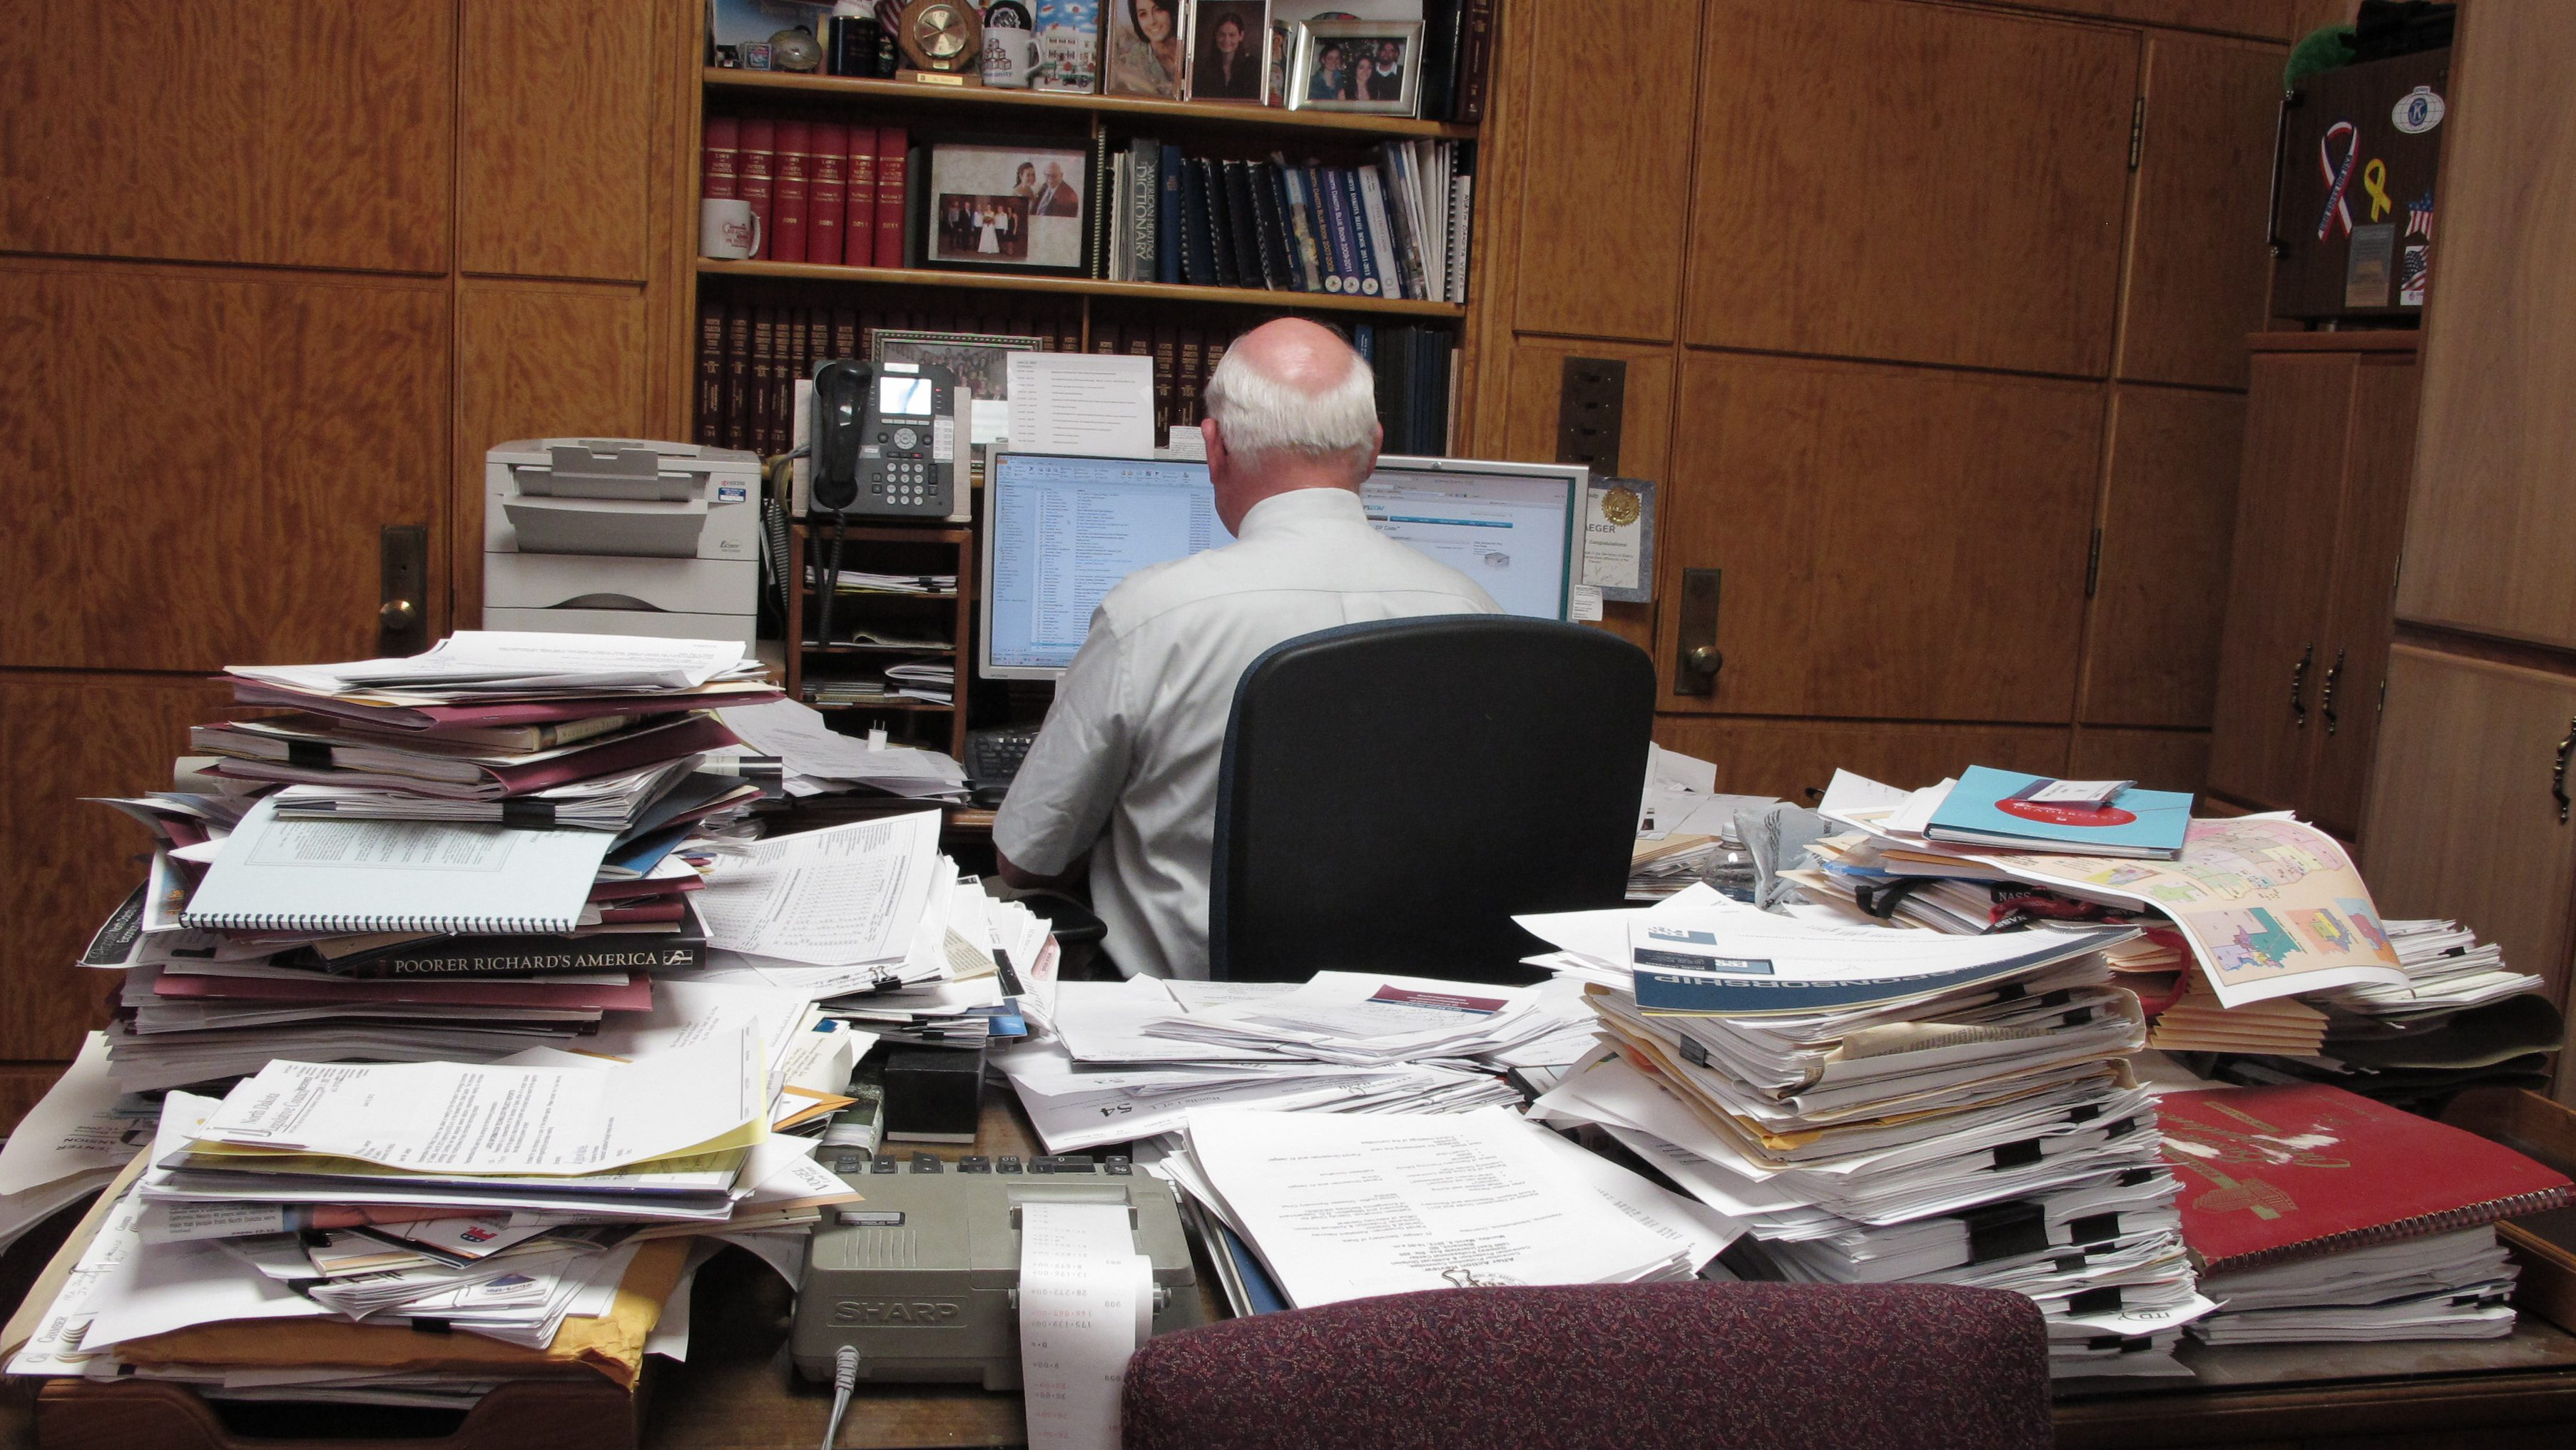 desk stacked with papers write book